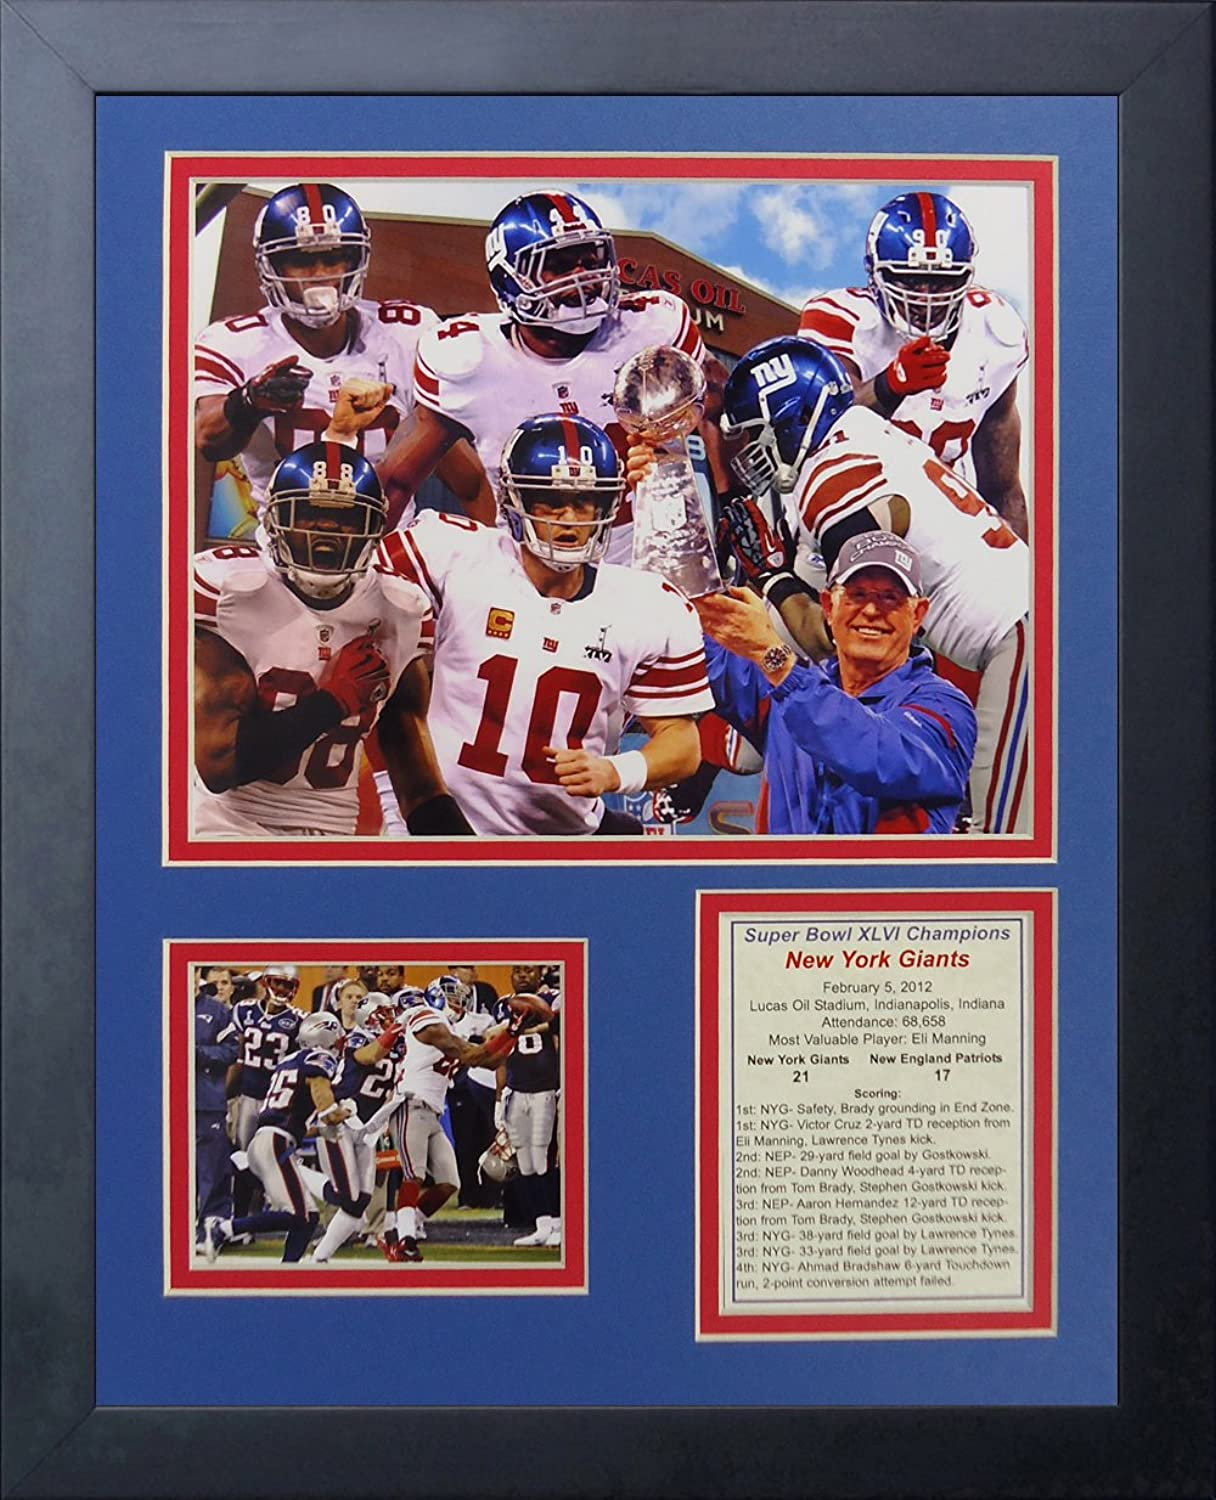 Legends Never Die 2011 New York Giants Super Bowl Champions  Framed Photo Collage, 11 x 14-Inch